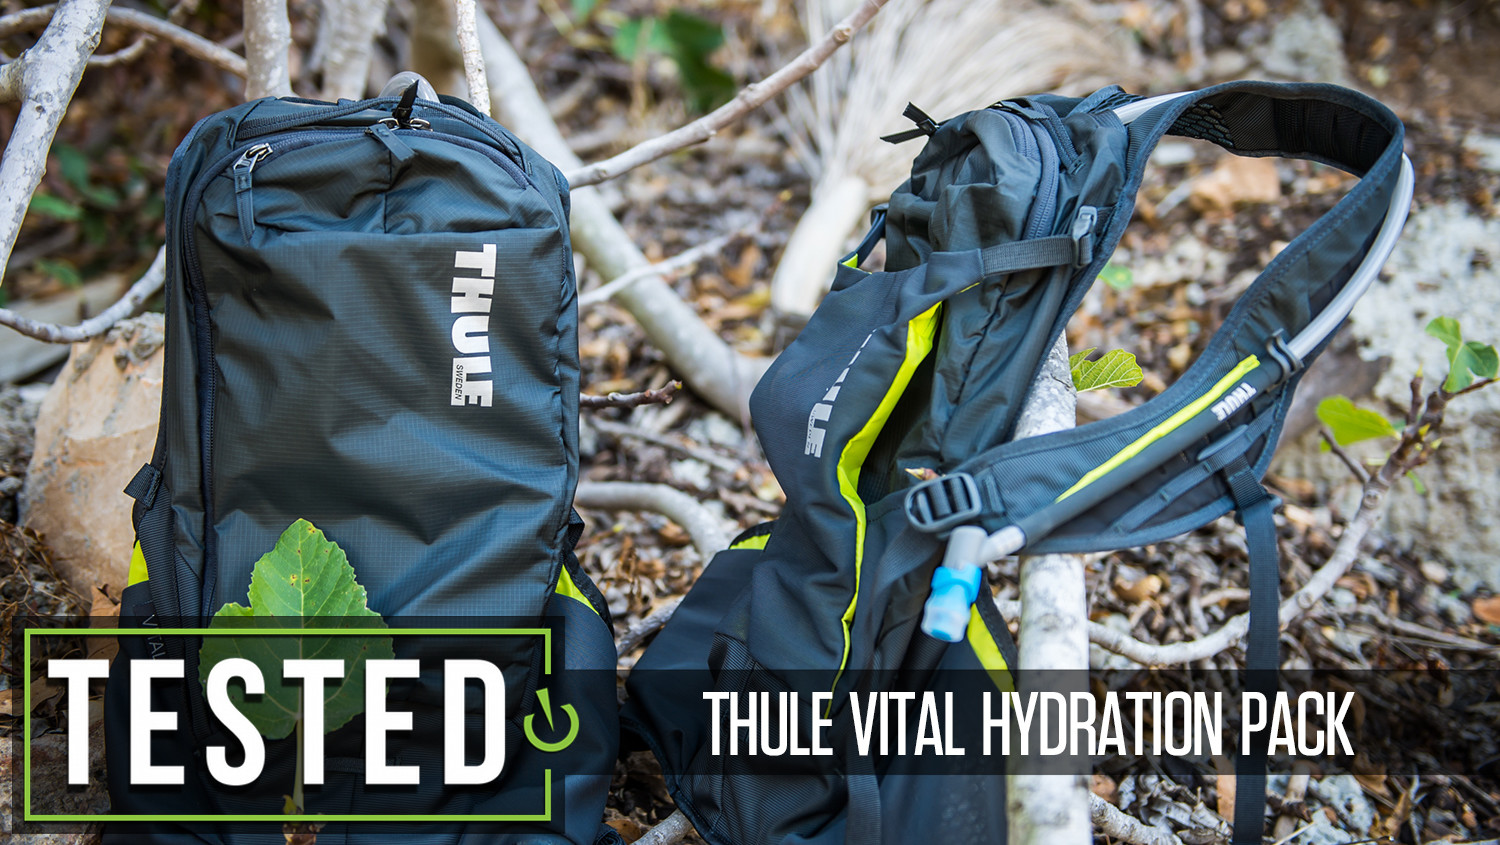 Tested: Thule Vital Hydration Pack